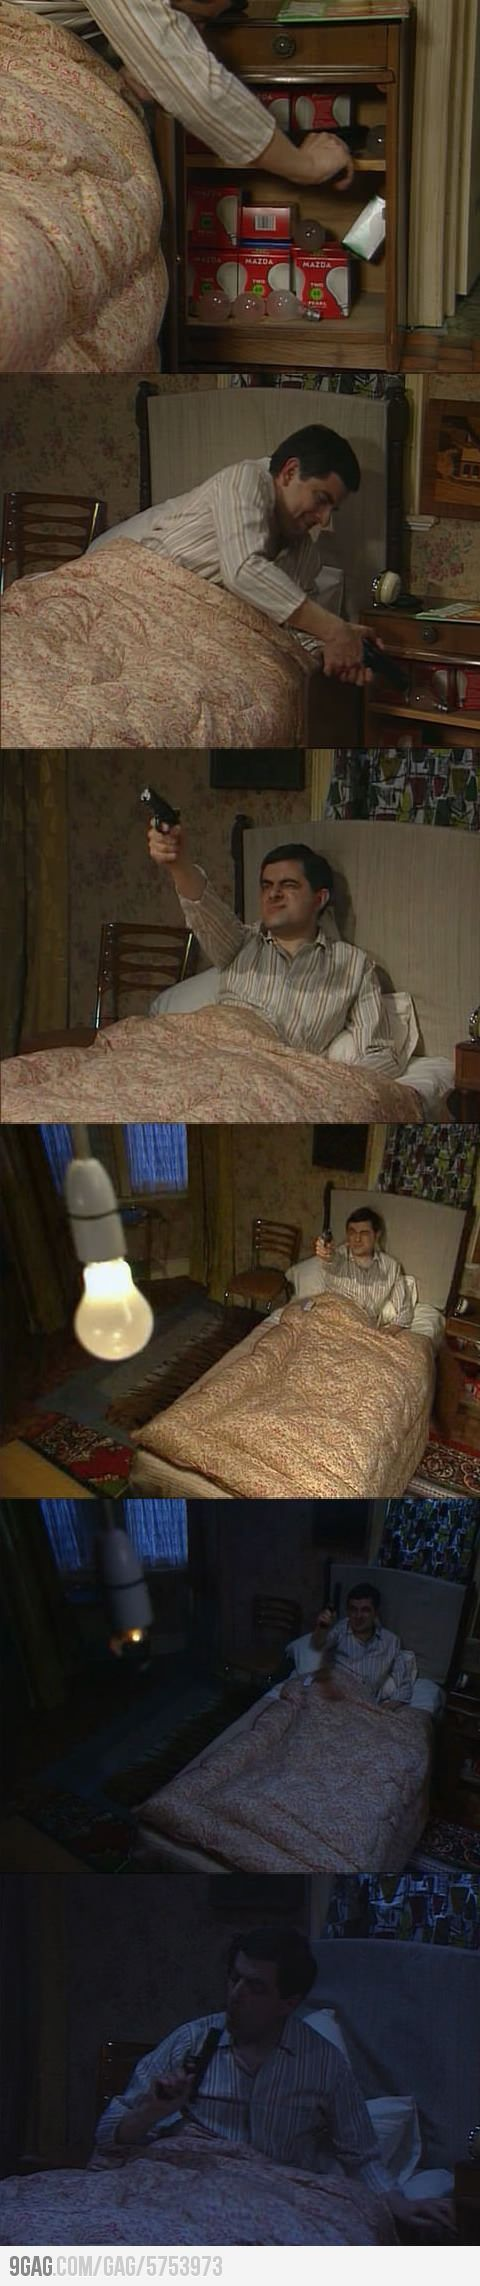 Turn off the light like a boss